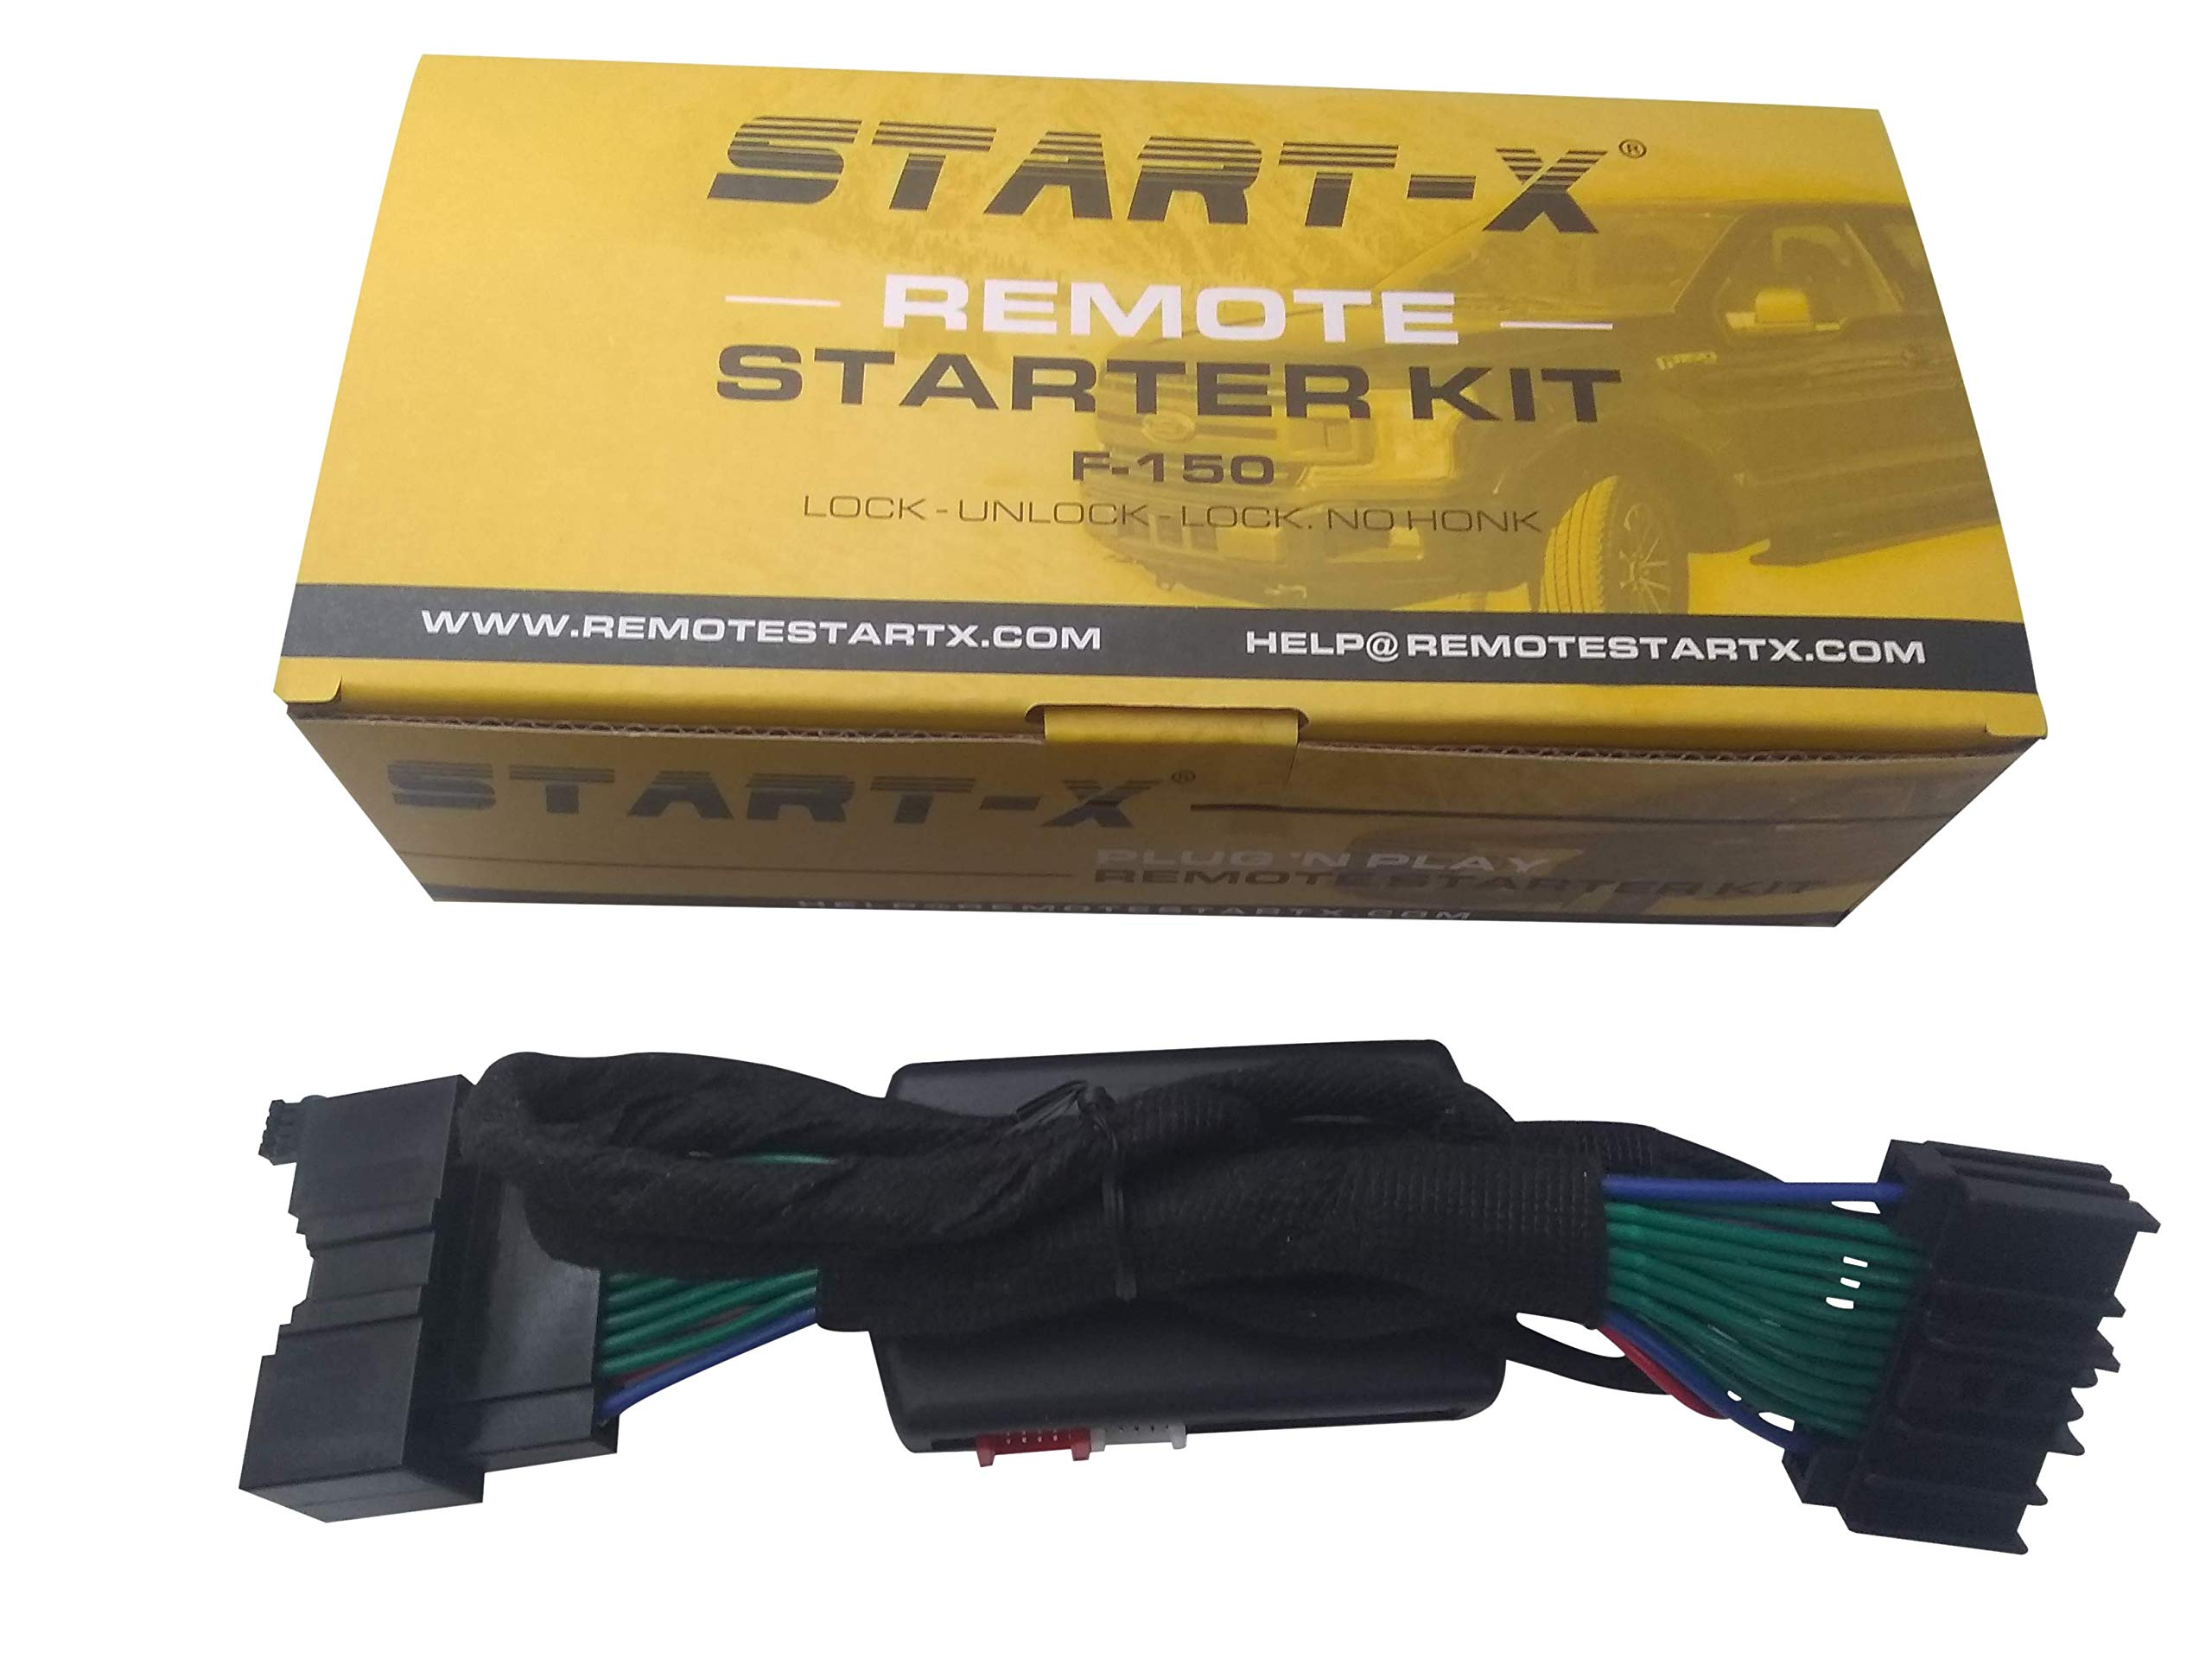 Start-X Remote Starter For Ford F150 F-150 2015-2019, F-250 17-19, Ranger 2019, Expedition 18-19, Edge 15-19, Explorer 16-19, Fusion 14-19 (NO HONK-LOCK-UNLOCK-LOCK) by Start-X